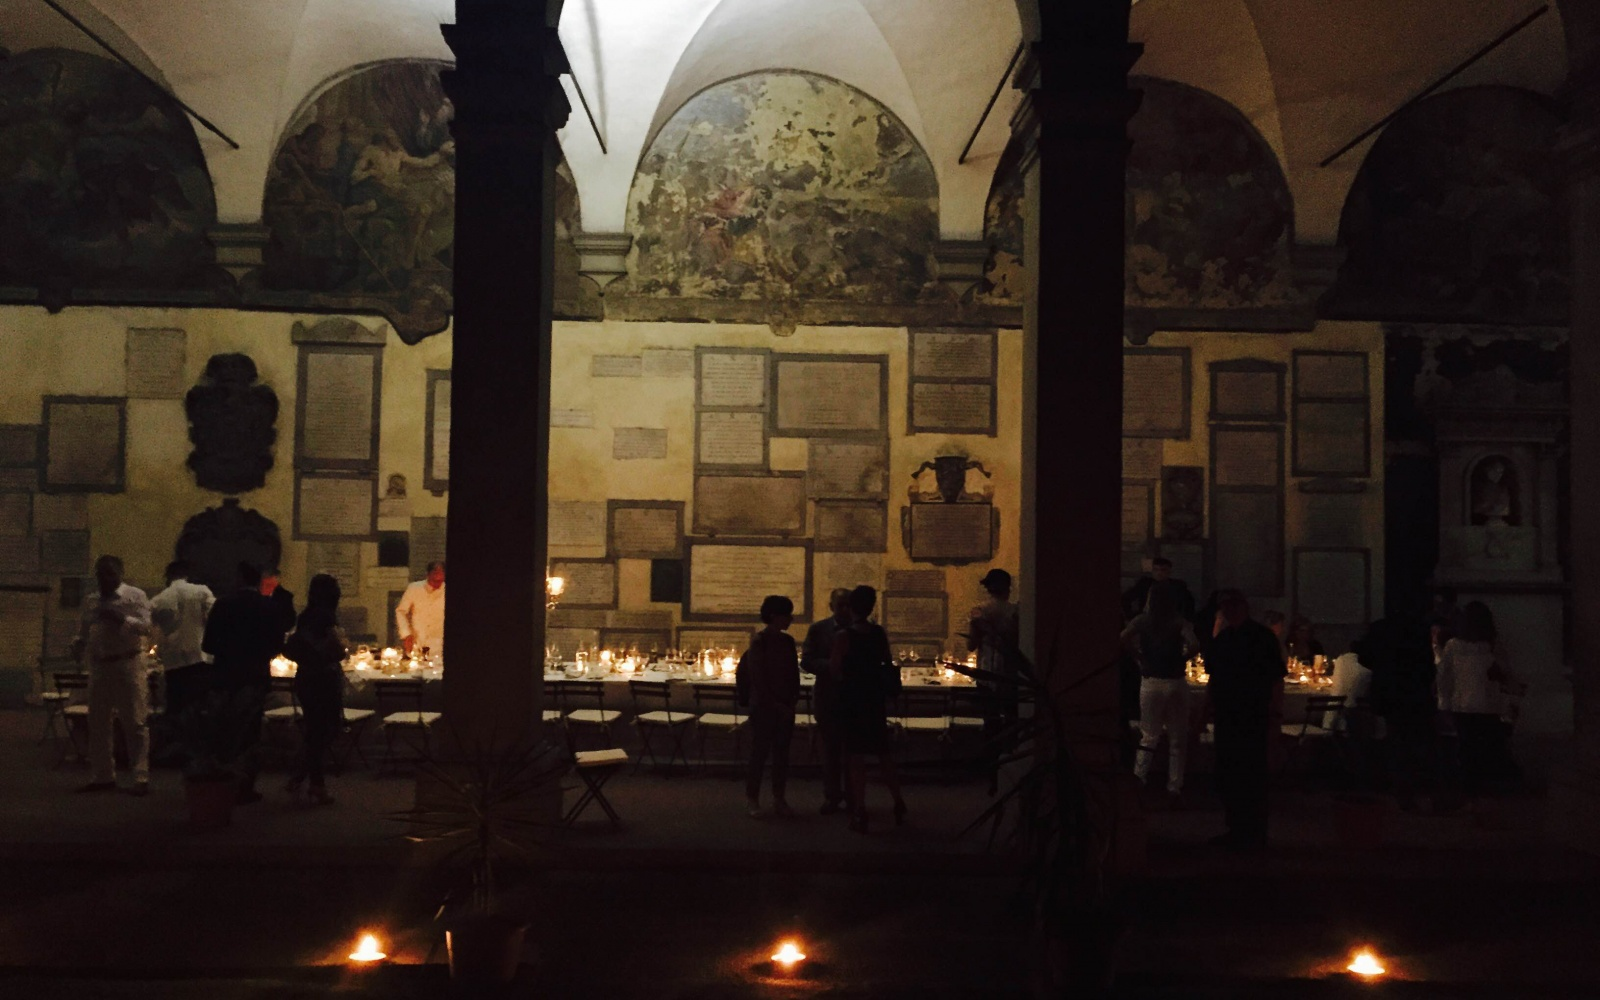 Florence Celebrates its Own 'Last Supper' Frescoes with Sumptuous Pop-Up Dinner Series